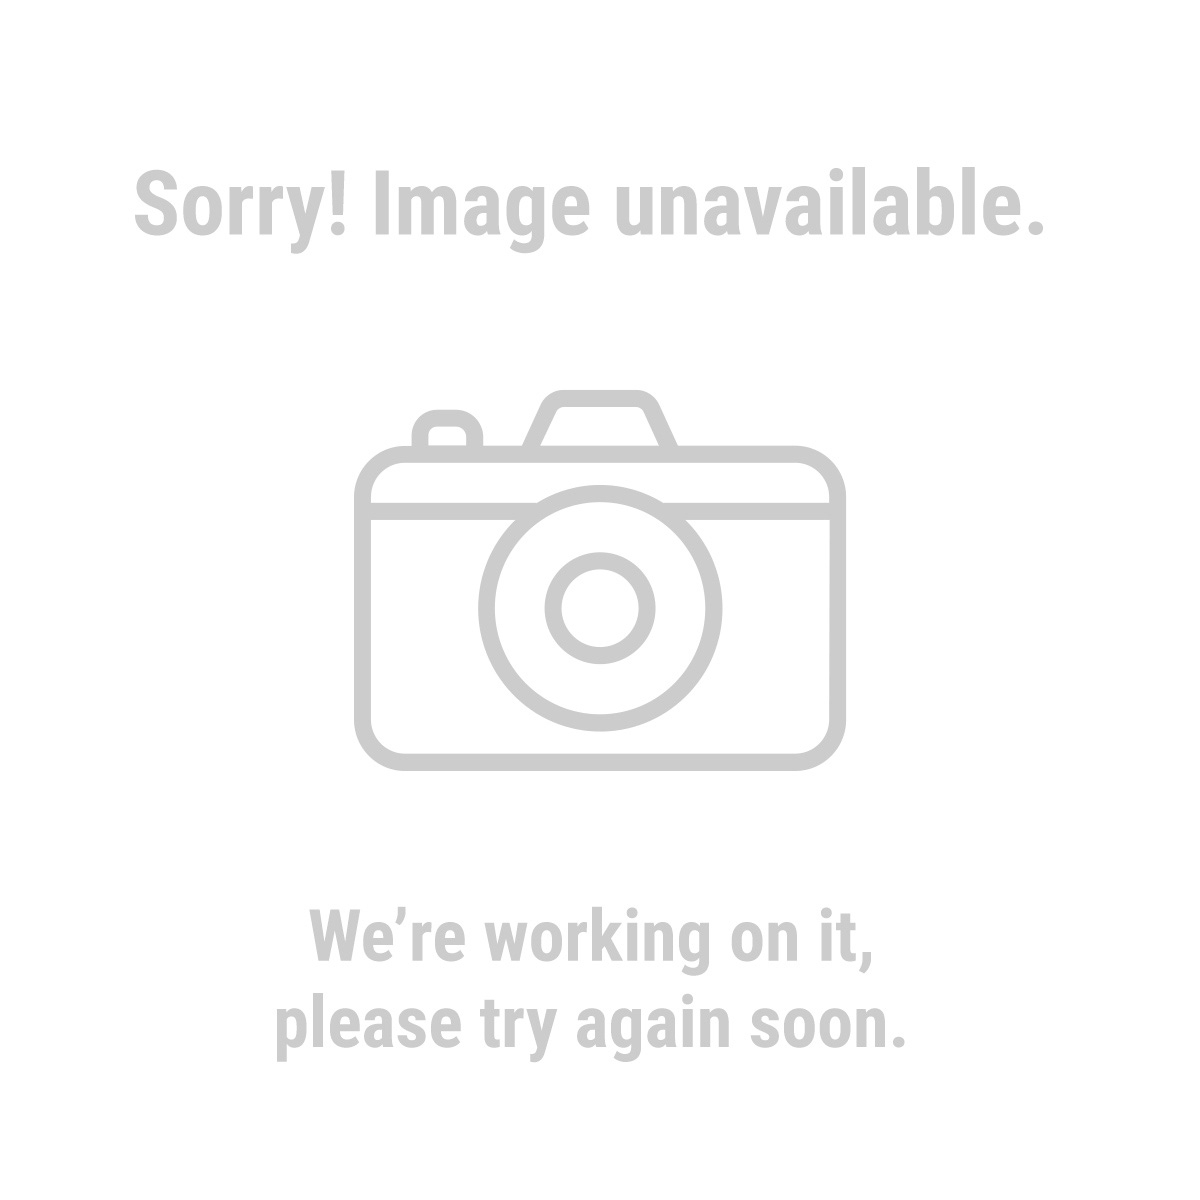 Central Pneumatic 61615 1/3 Horsepower, 3 gal., 100 PSI Oilless Pancake Air Compressor